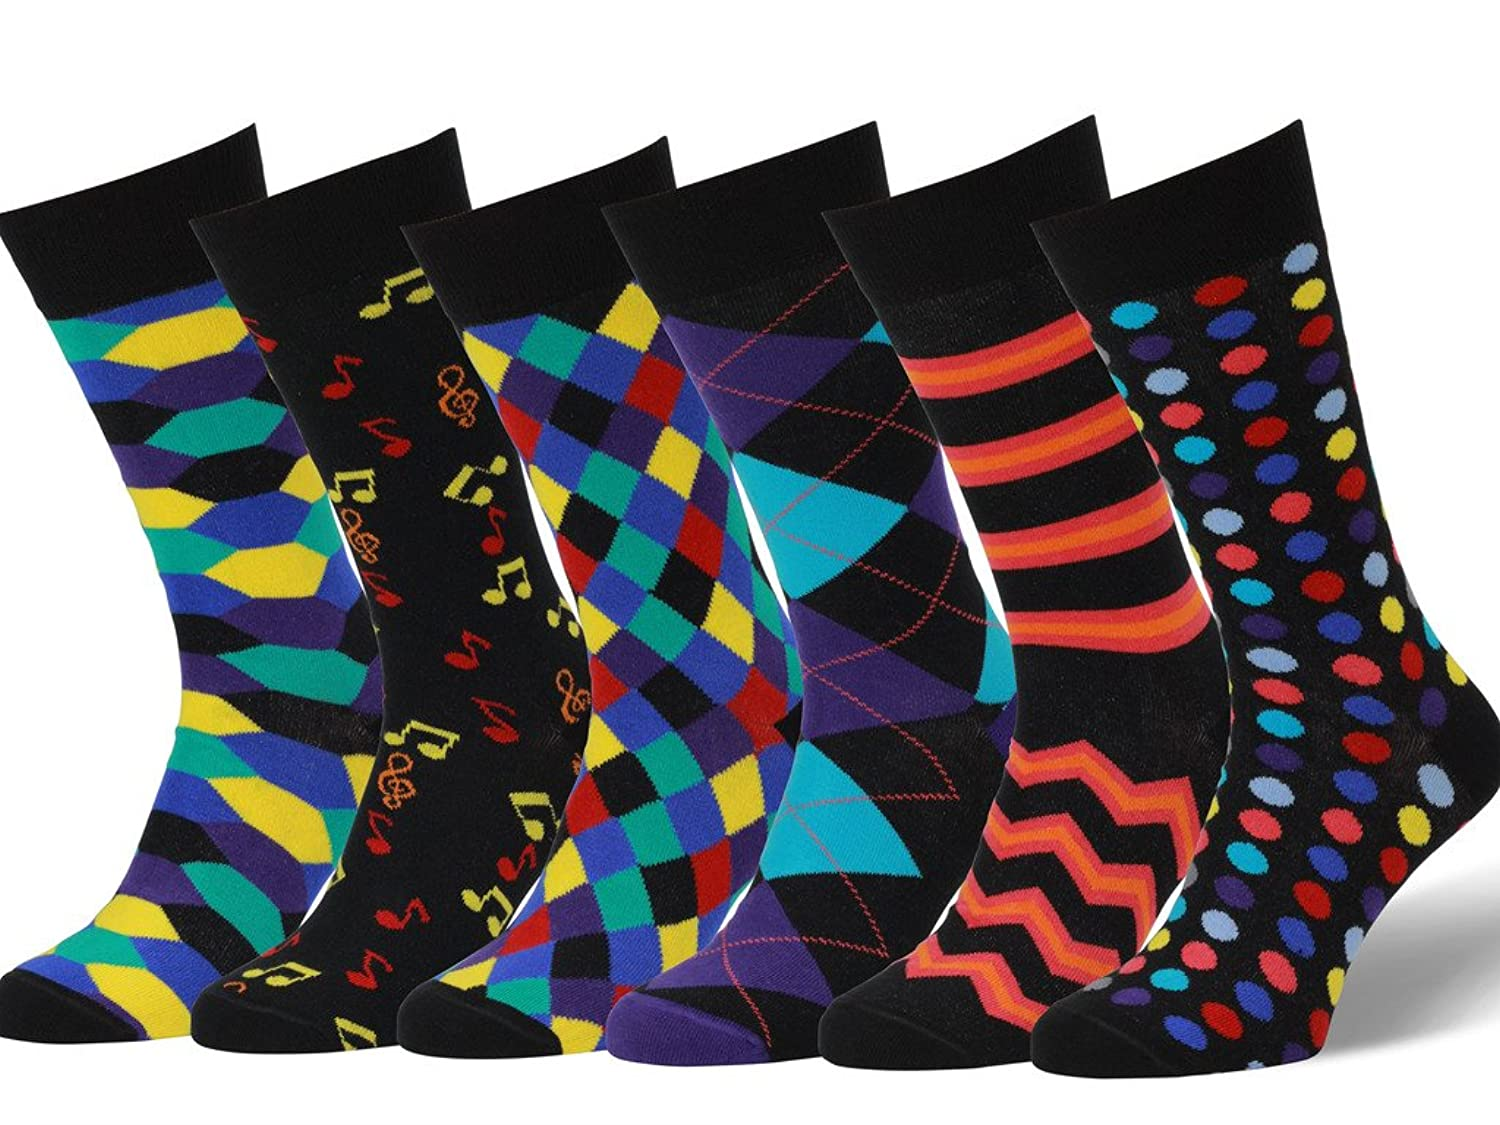 Easton Marlowe Mens 6 Pack Colorful Patterned Dress Socks, European Made at Amazon Mens Clothing store: